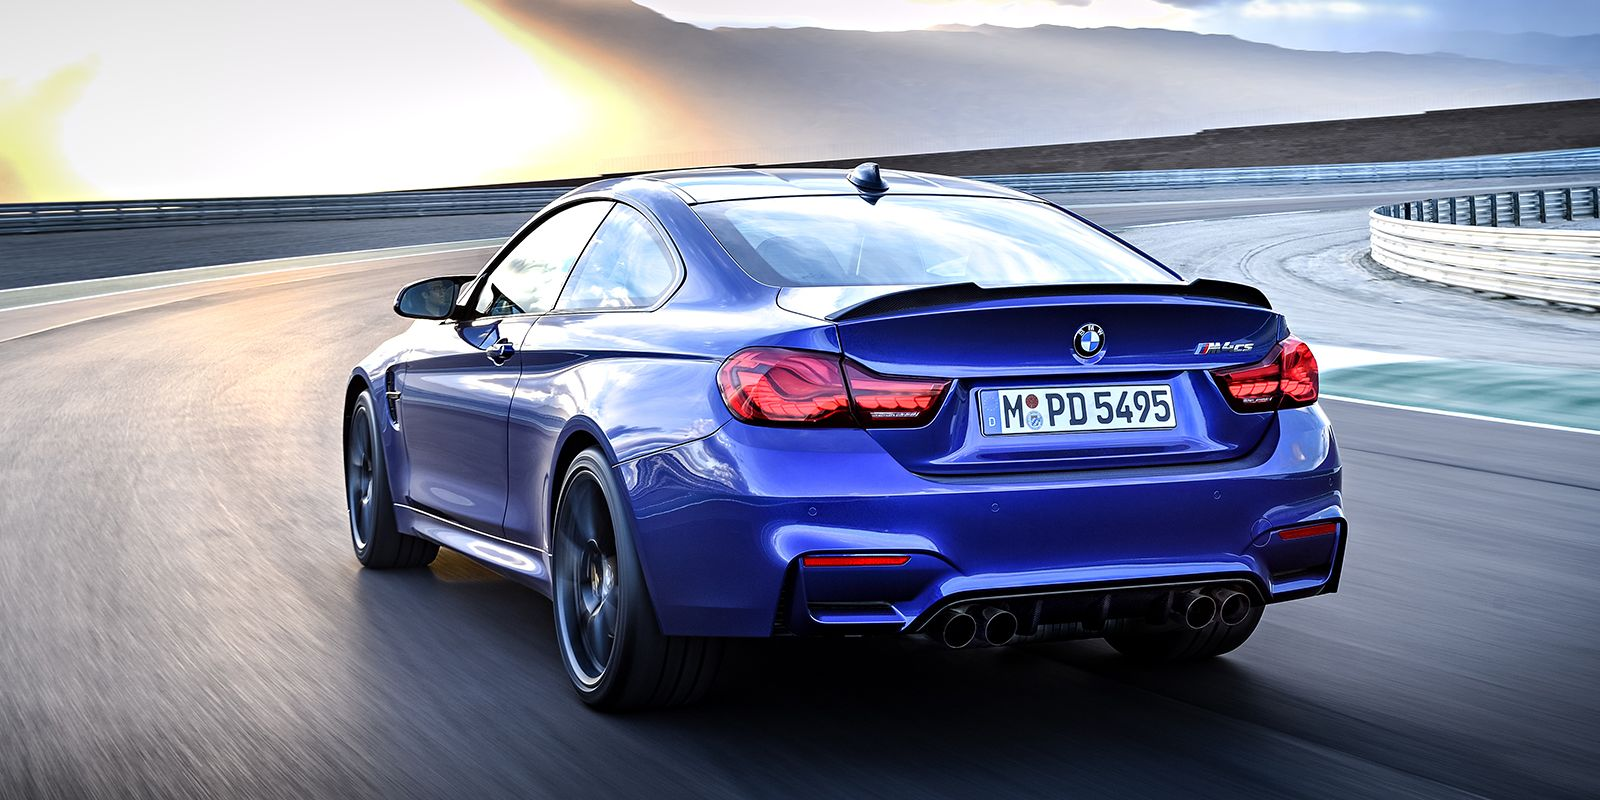 The 2018 Bmw M4 Cs Is Here With 454